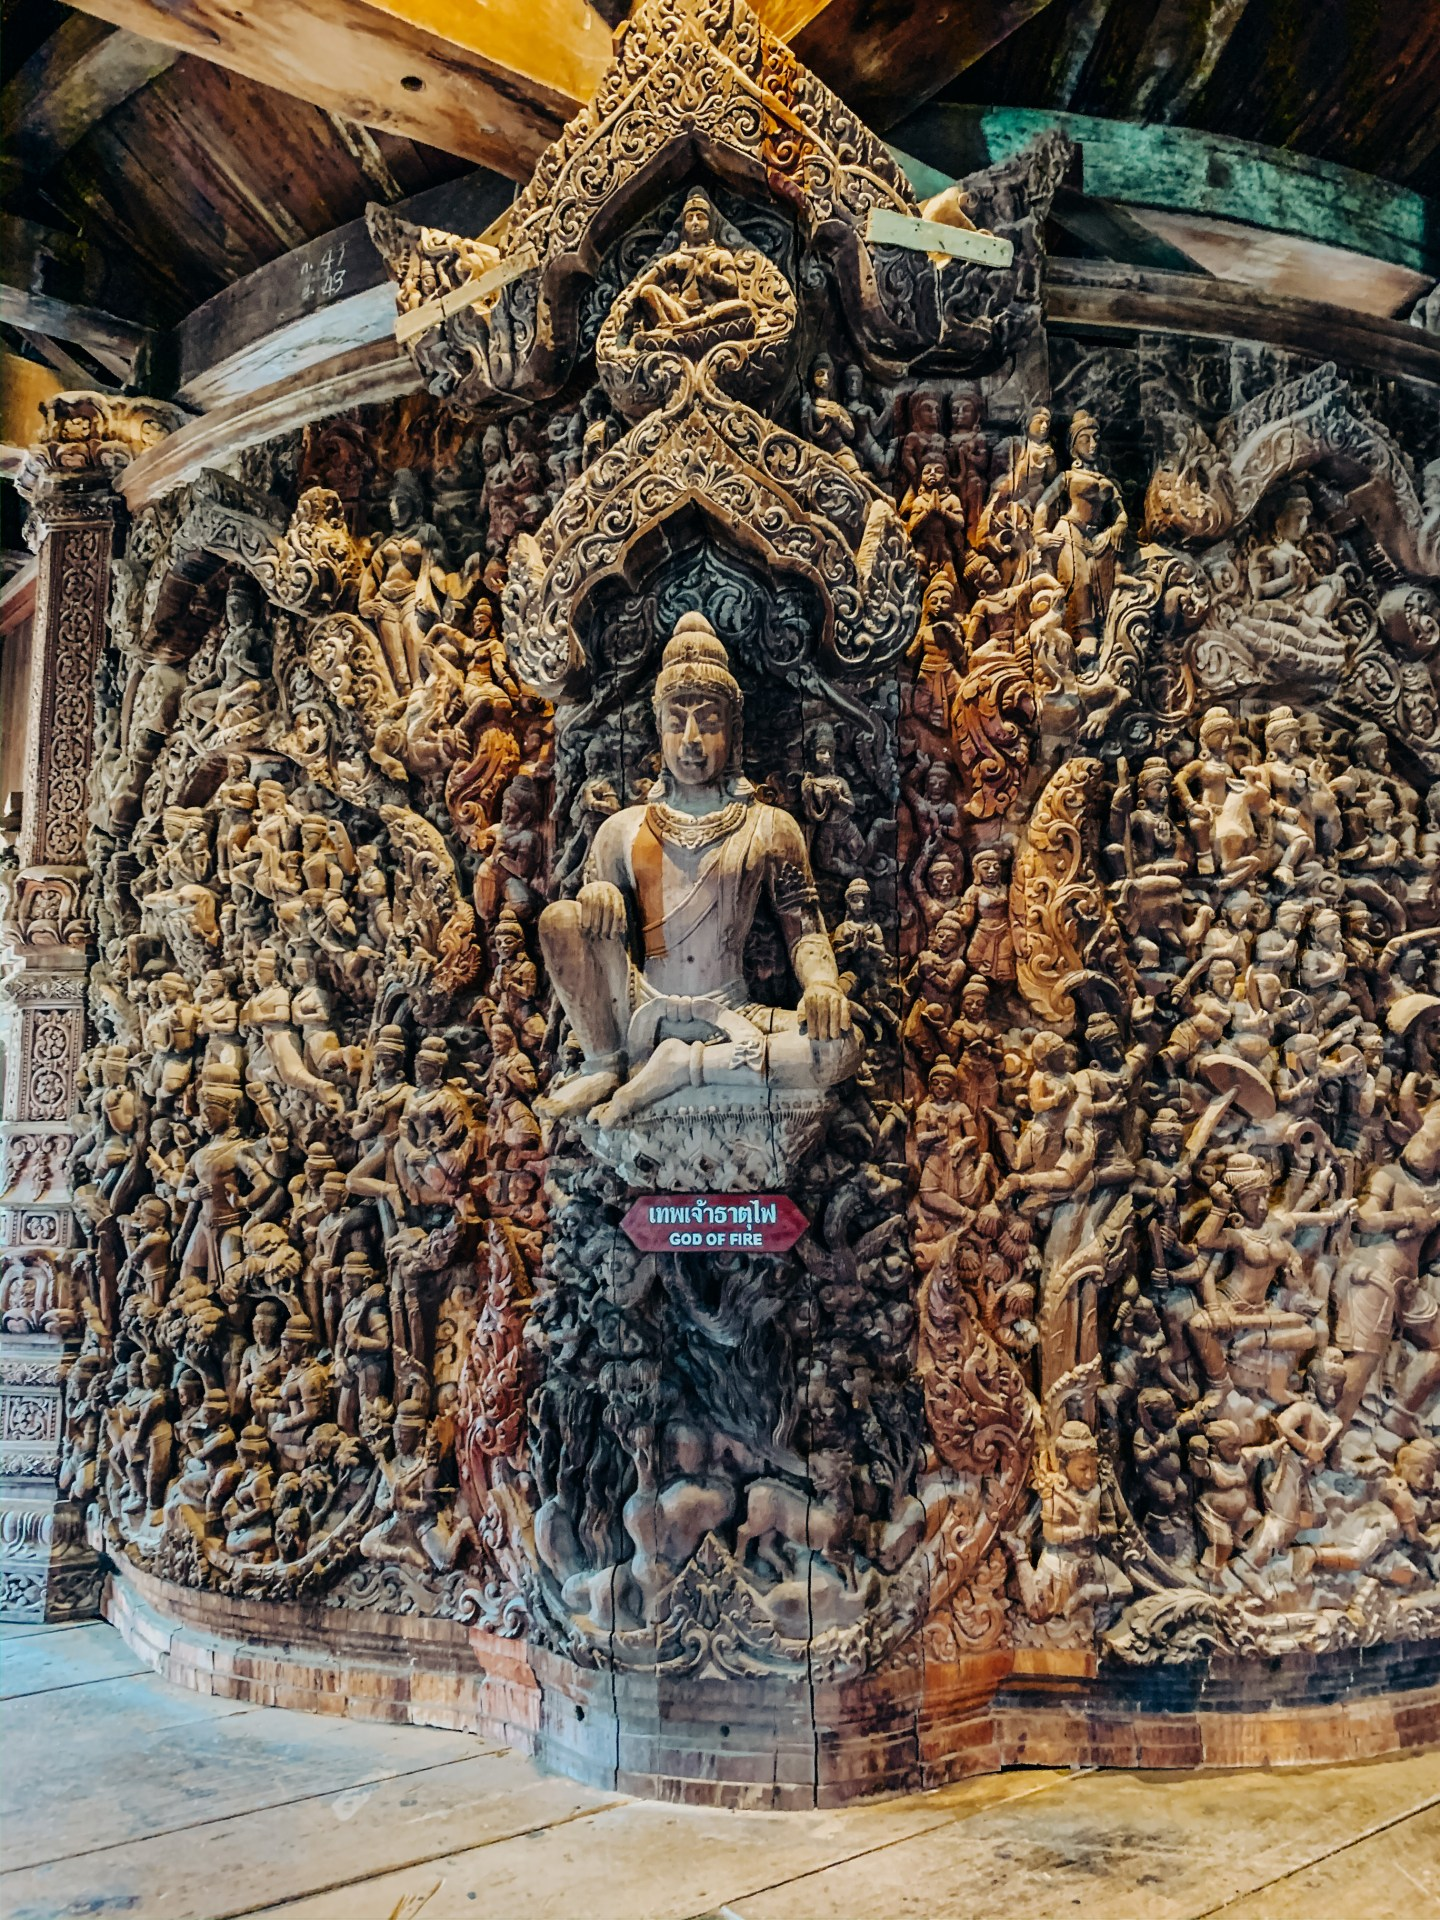 Ornate wood carvings in the Sanctuary of Truth, Pattaya